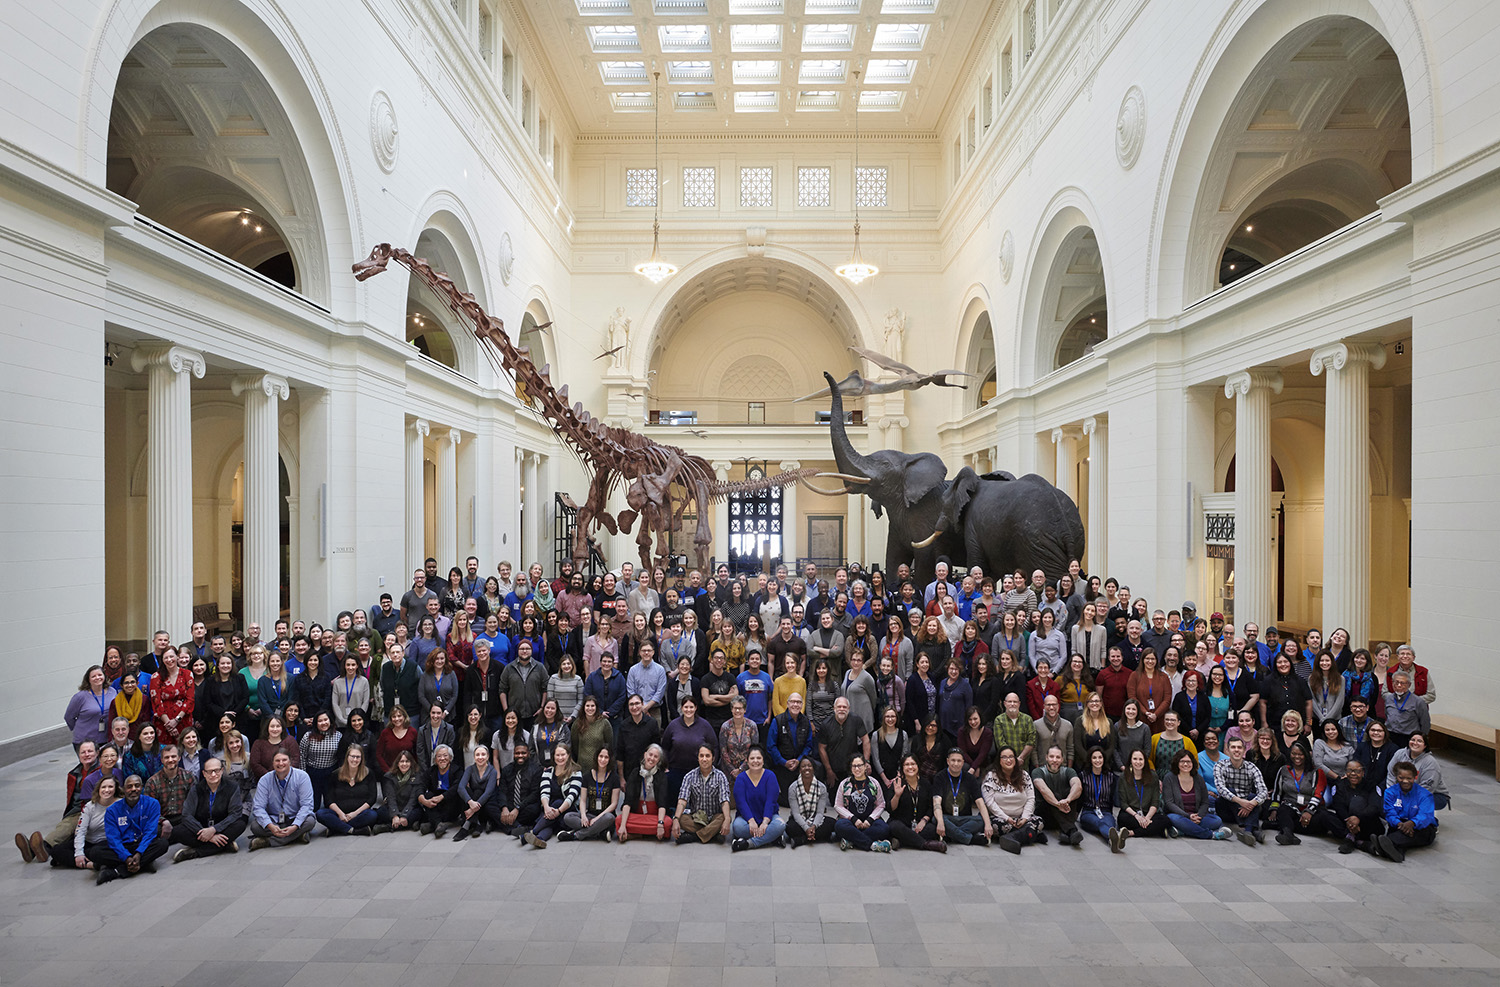 Field Museum staff pose for a group photo in Stanley Field Hall, standing in front of Maximo the Titanosaur and taxidermied African elephants.